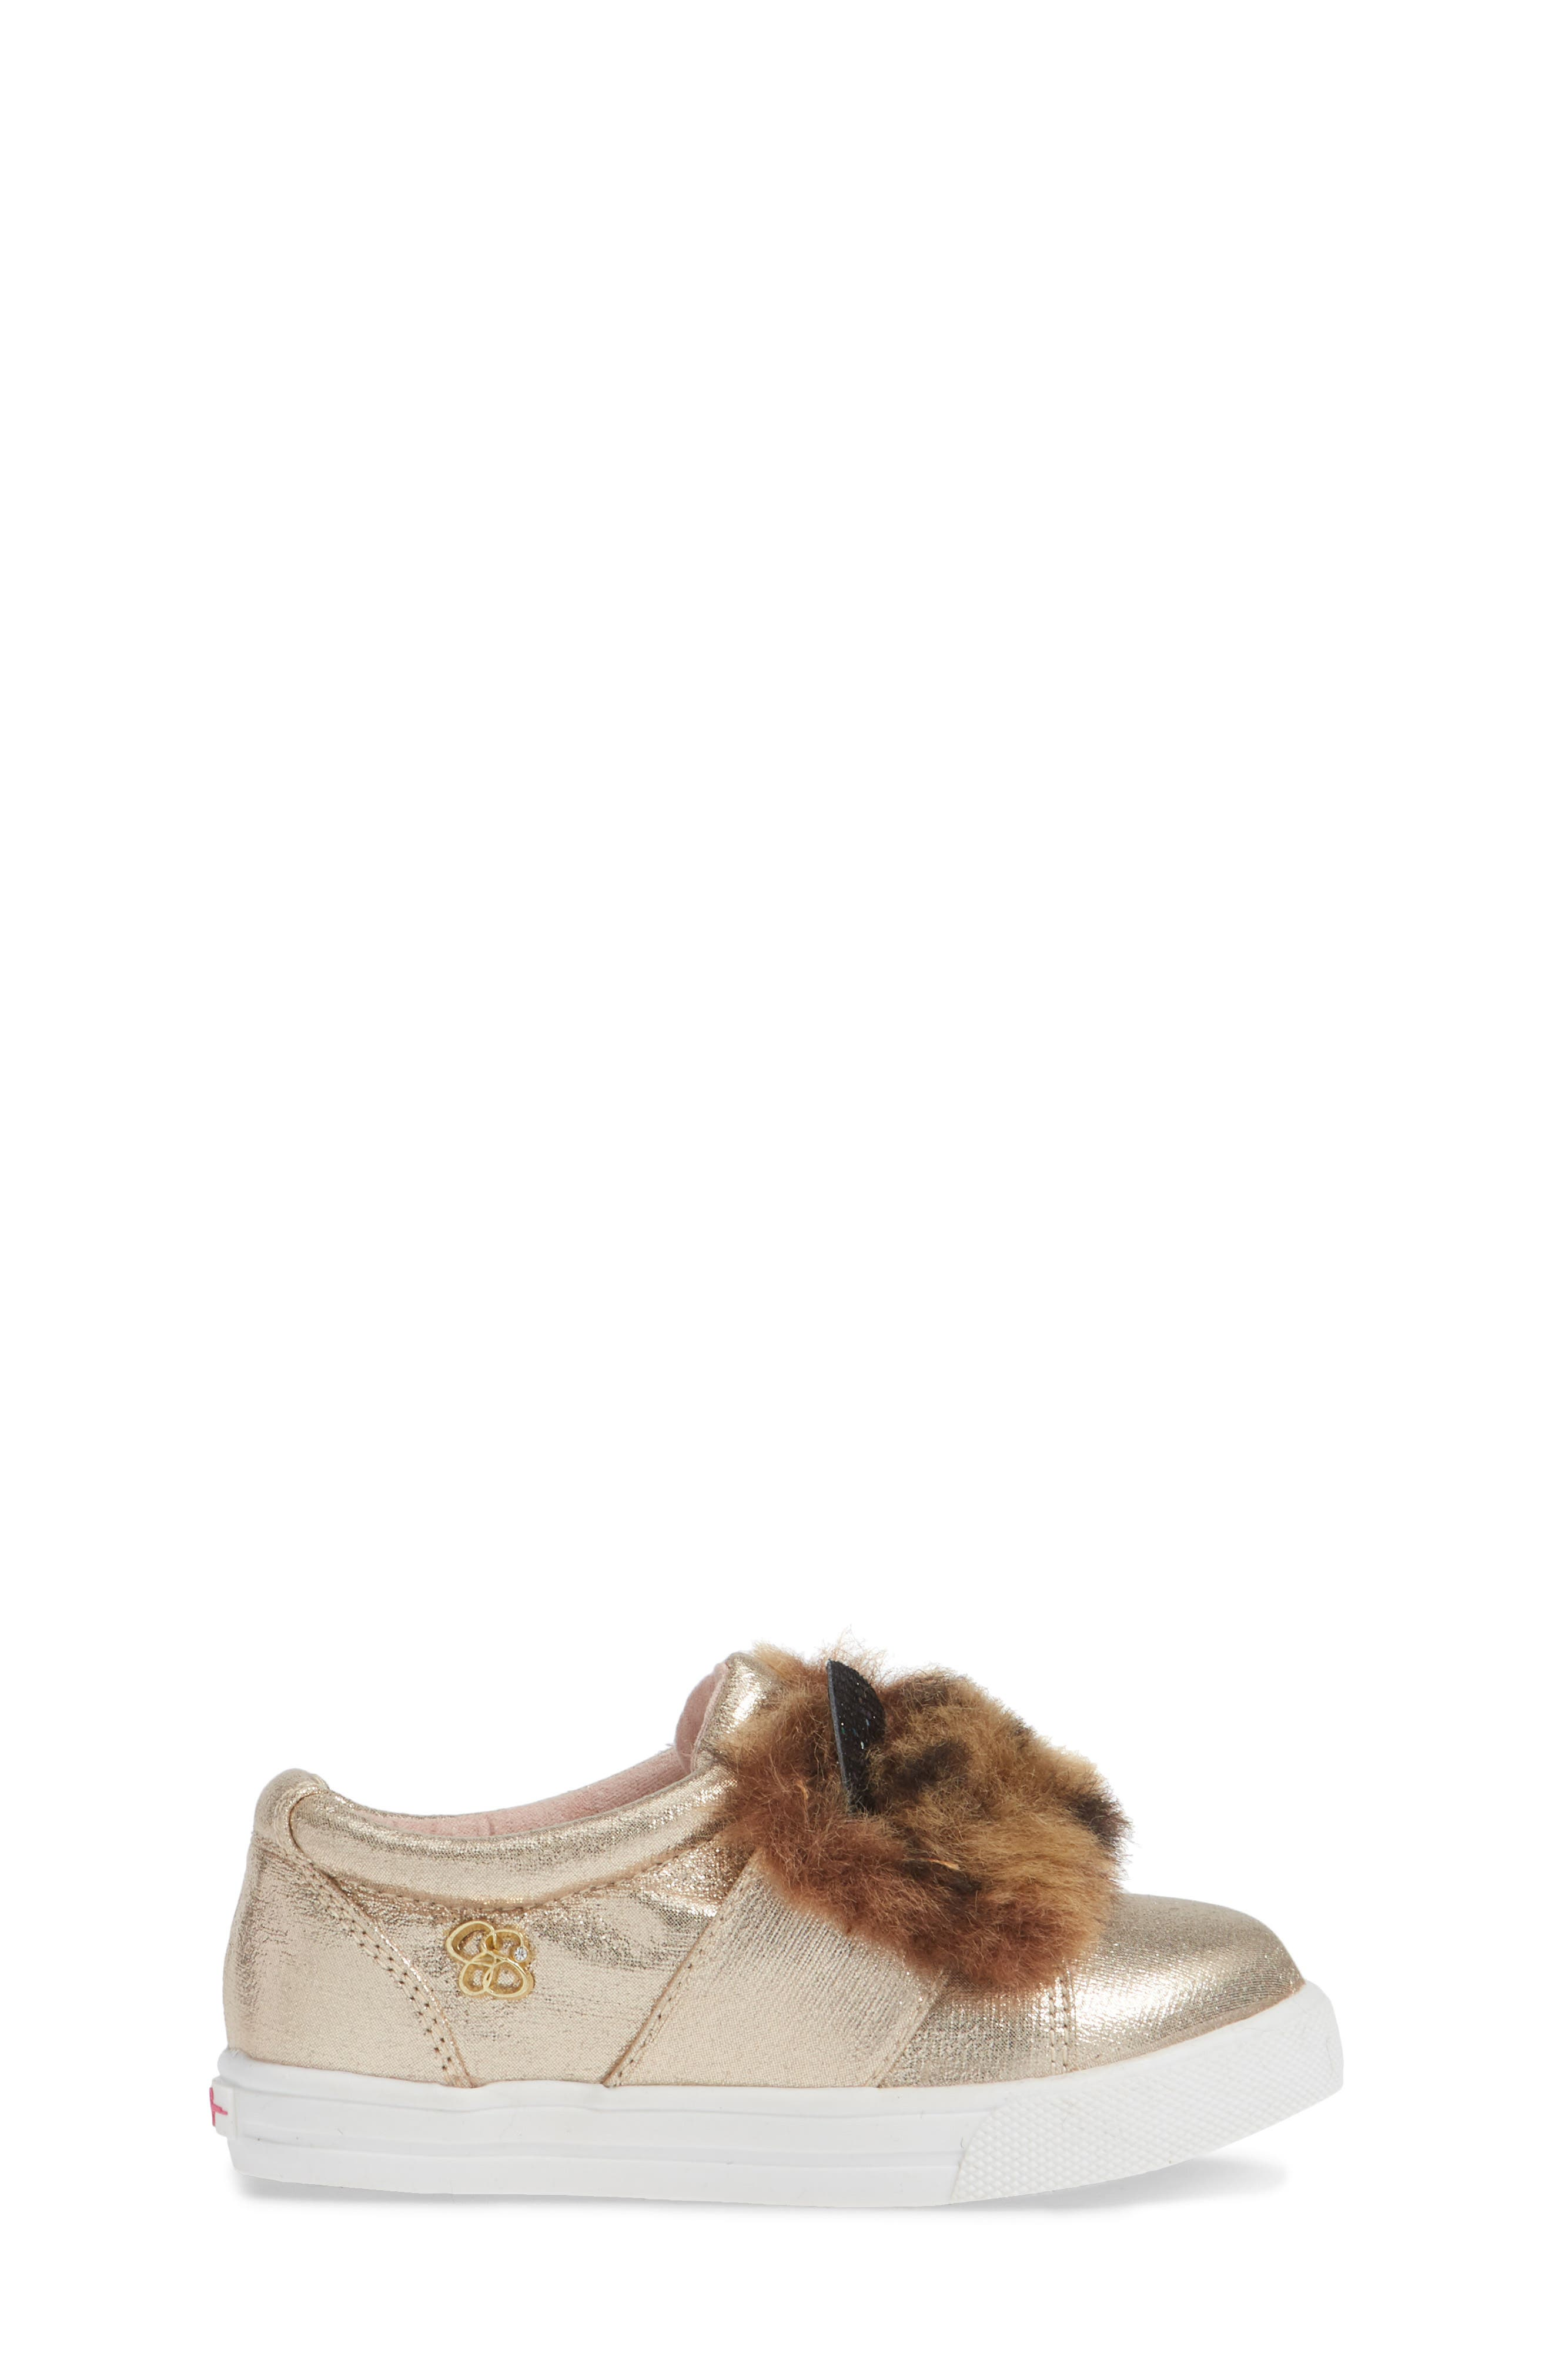 Faux Fur Slip-On Metallic Sneaker,                             Alternate thumbnail 3, color,                             GOLDEN METALLIC